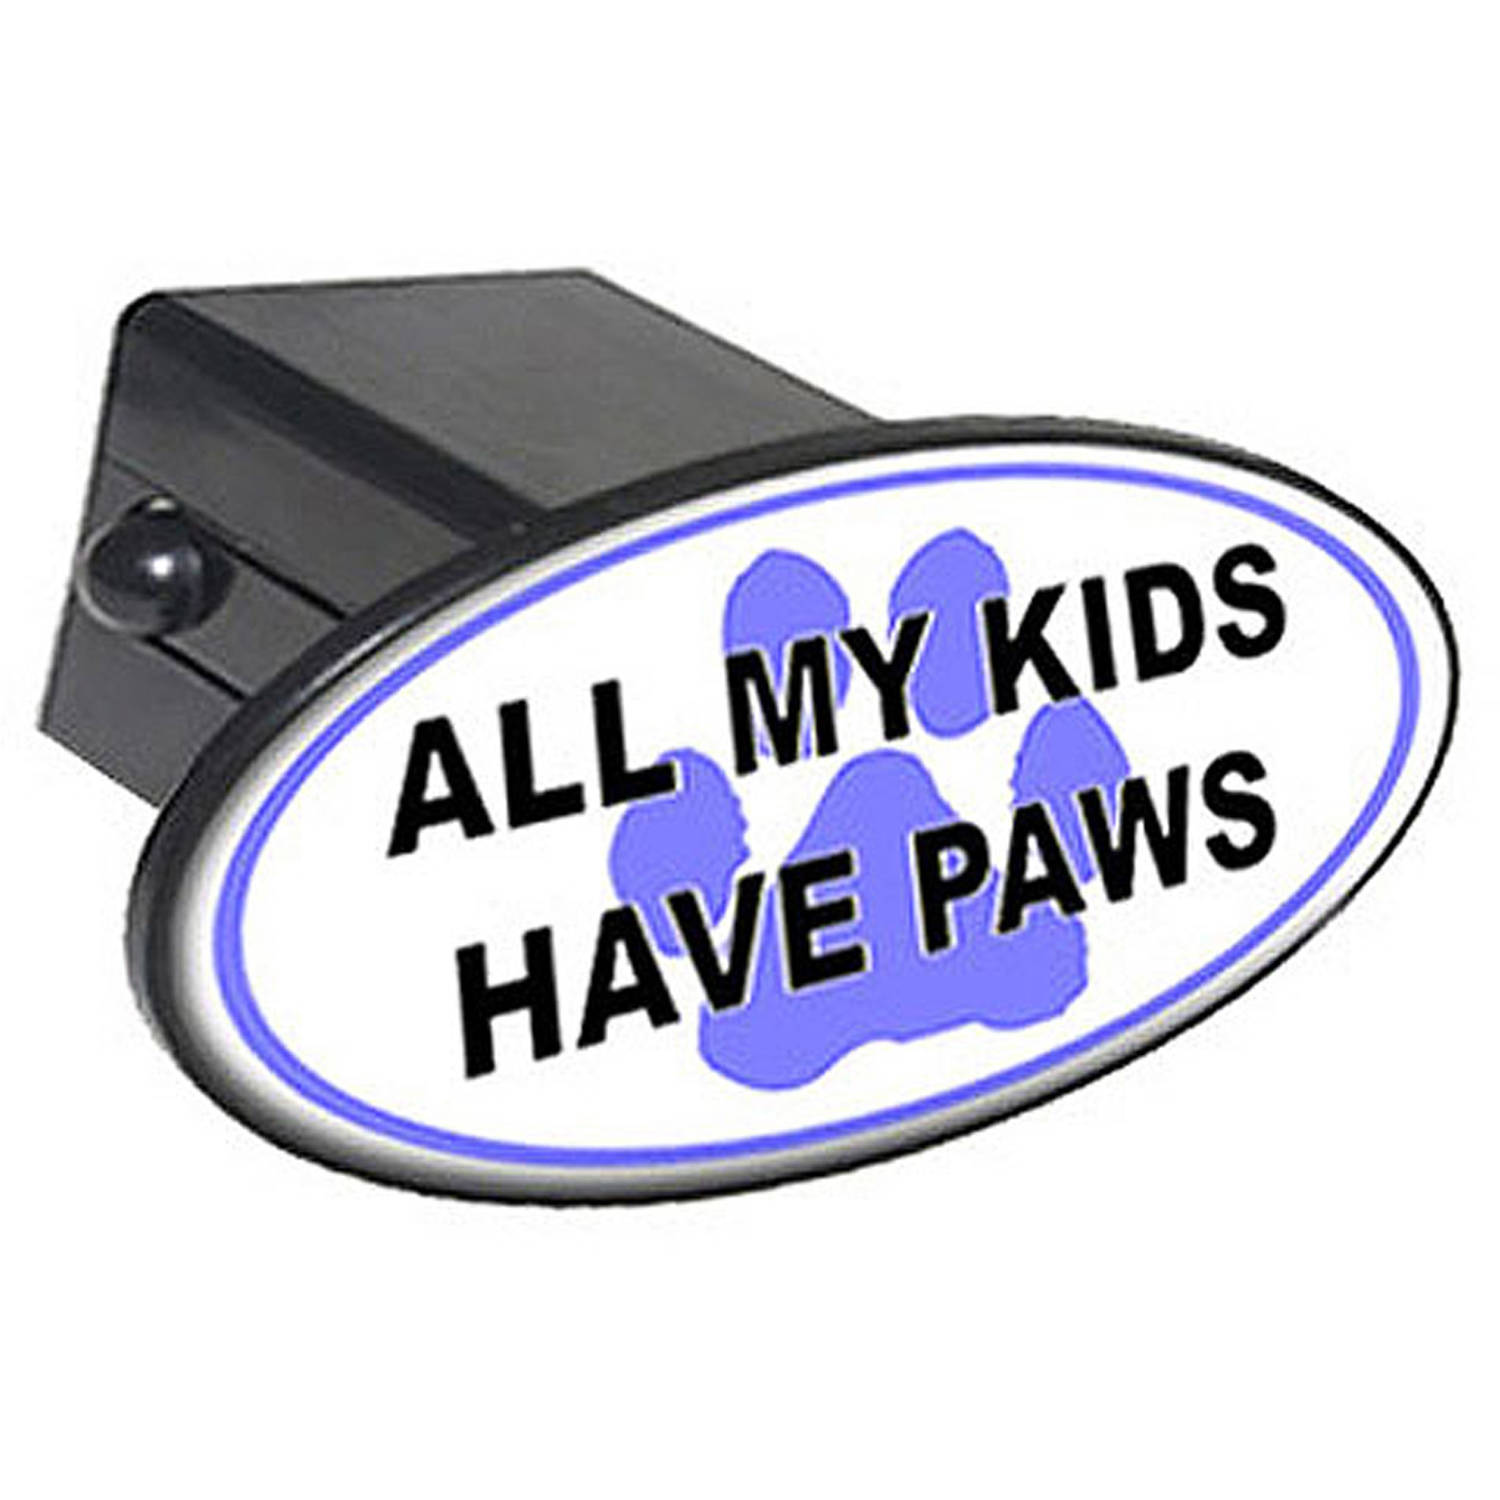 "All My Kids Have Paws, Blue 2"" Oval Tow Trailer Hitch Cover Plug Insert by Graphics and More"